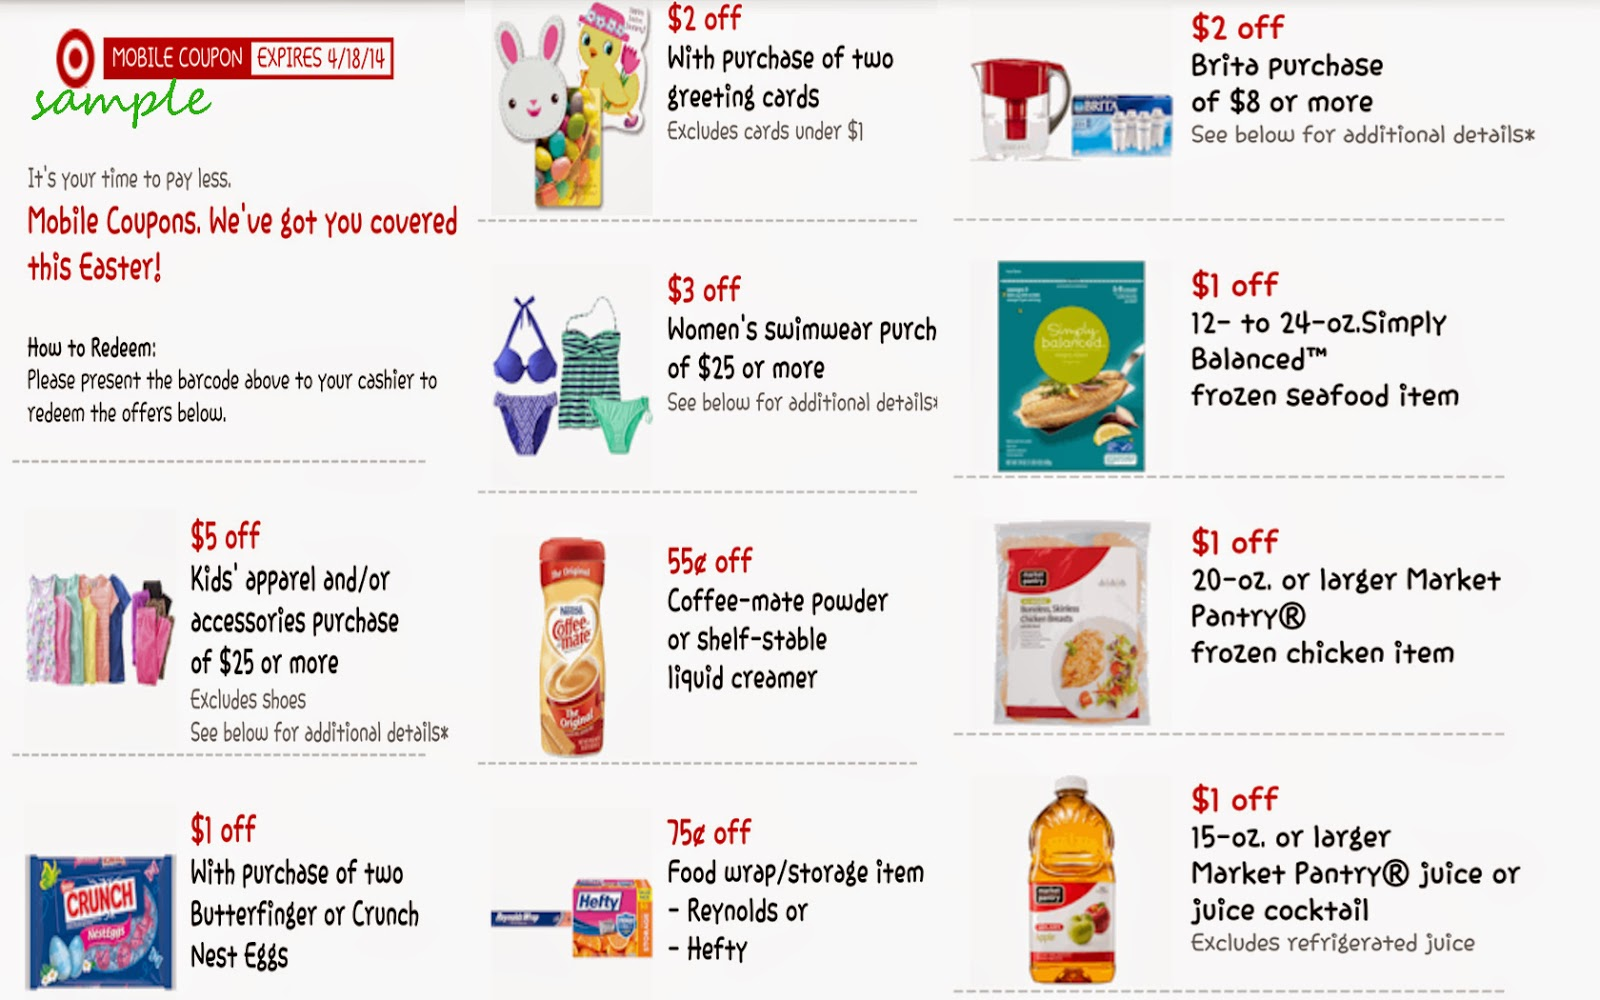 Target picture coupons printable